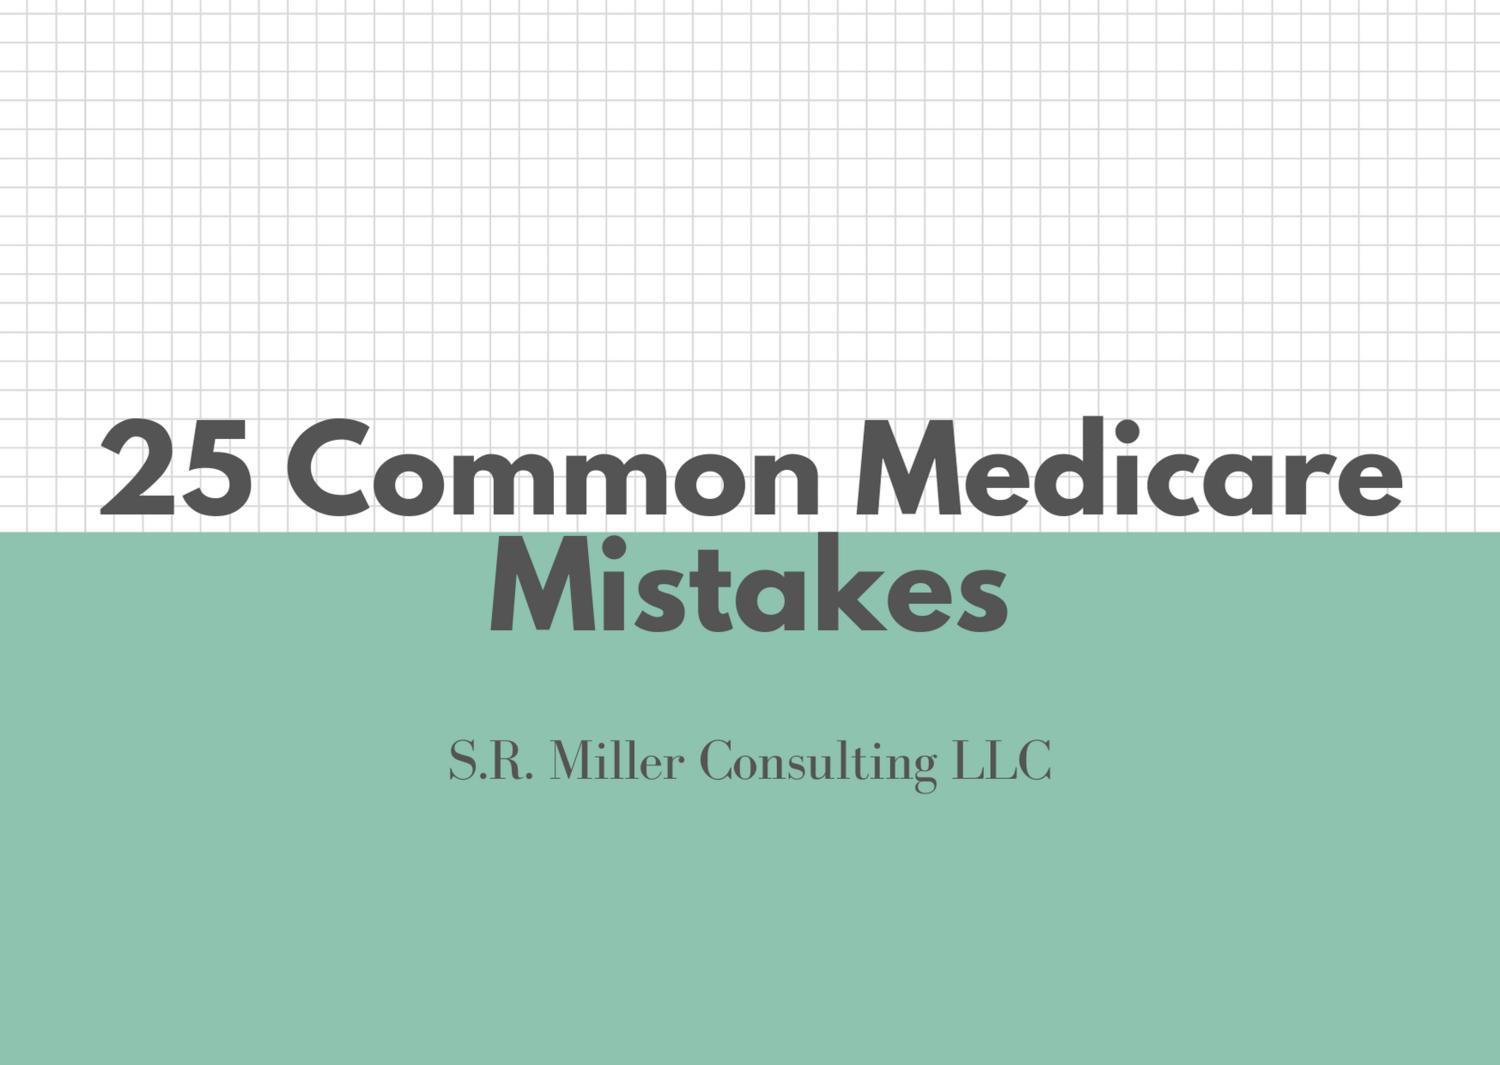 25 Common Medicare Mistakes